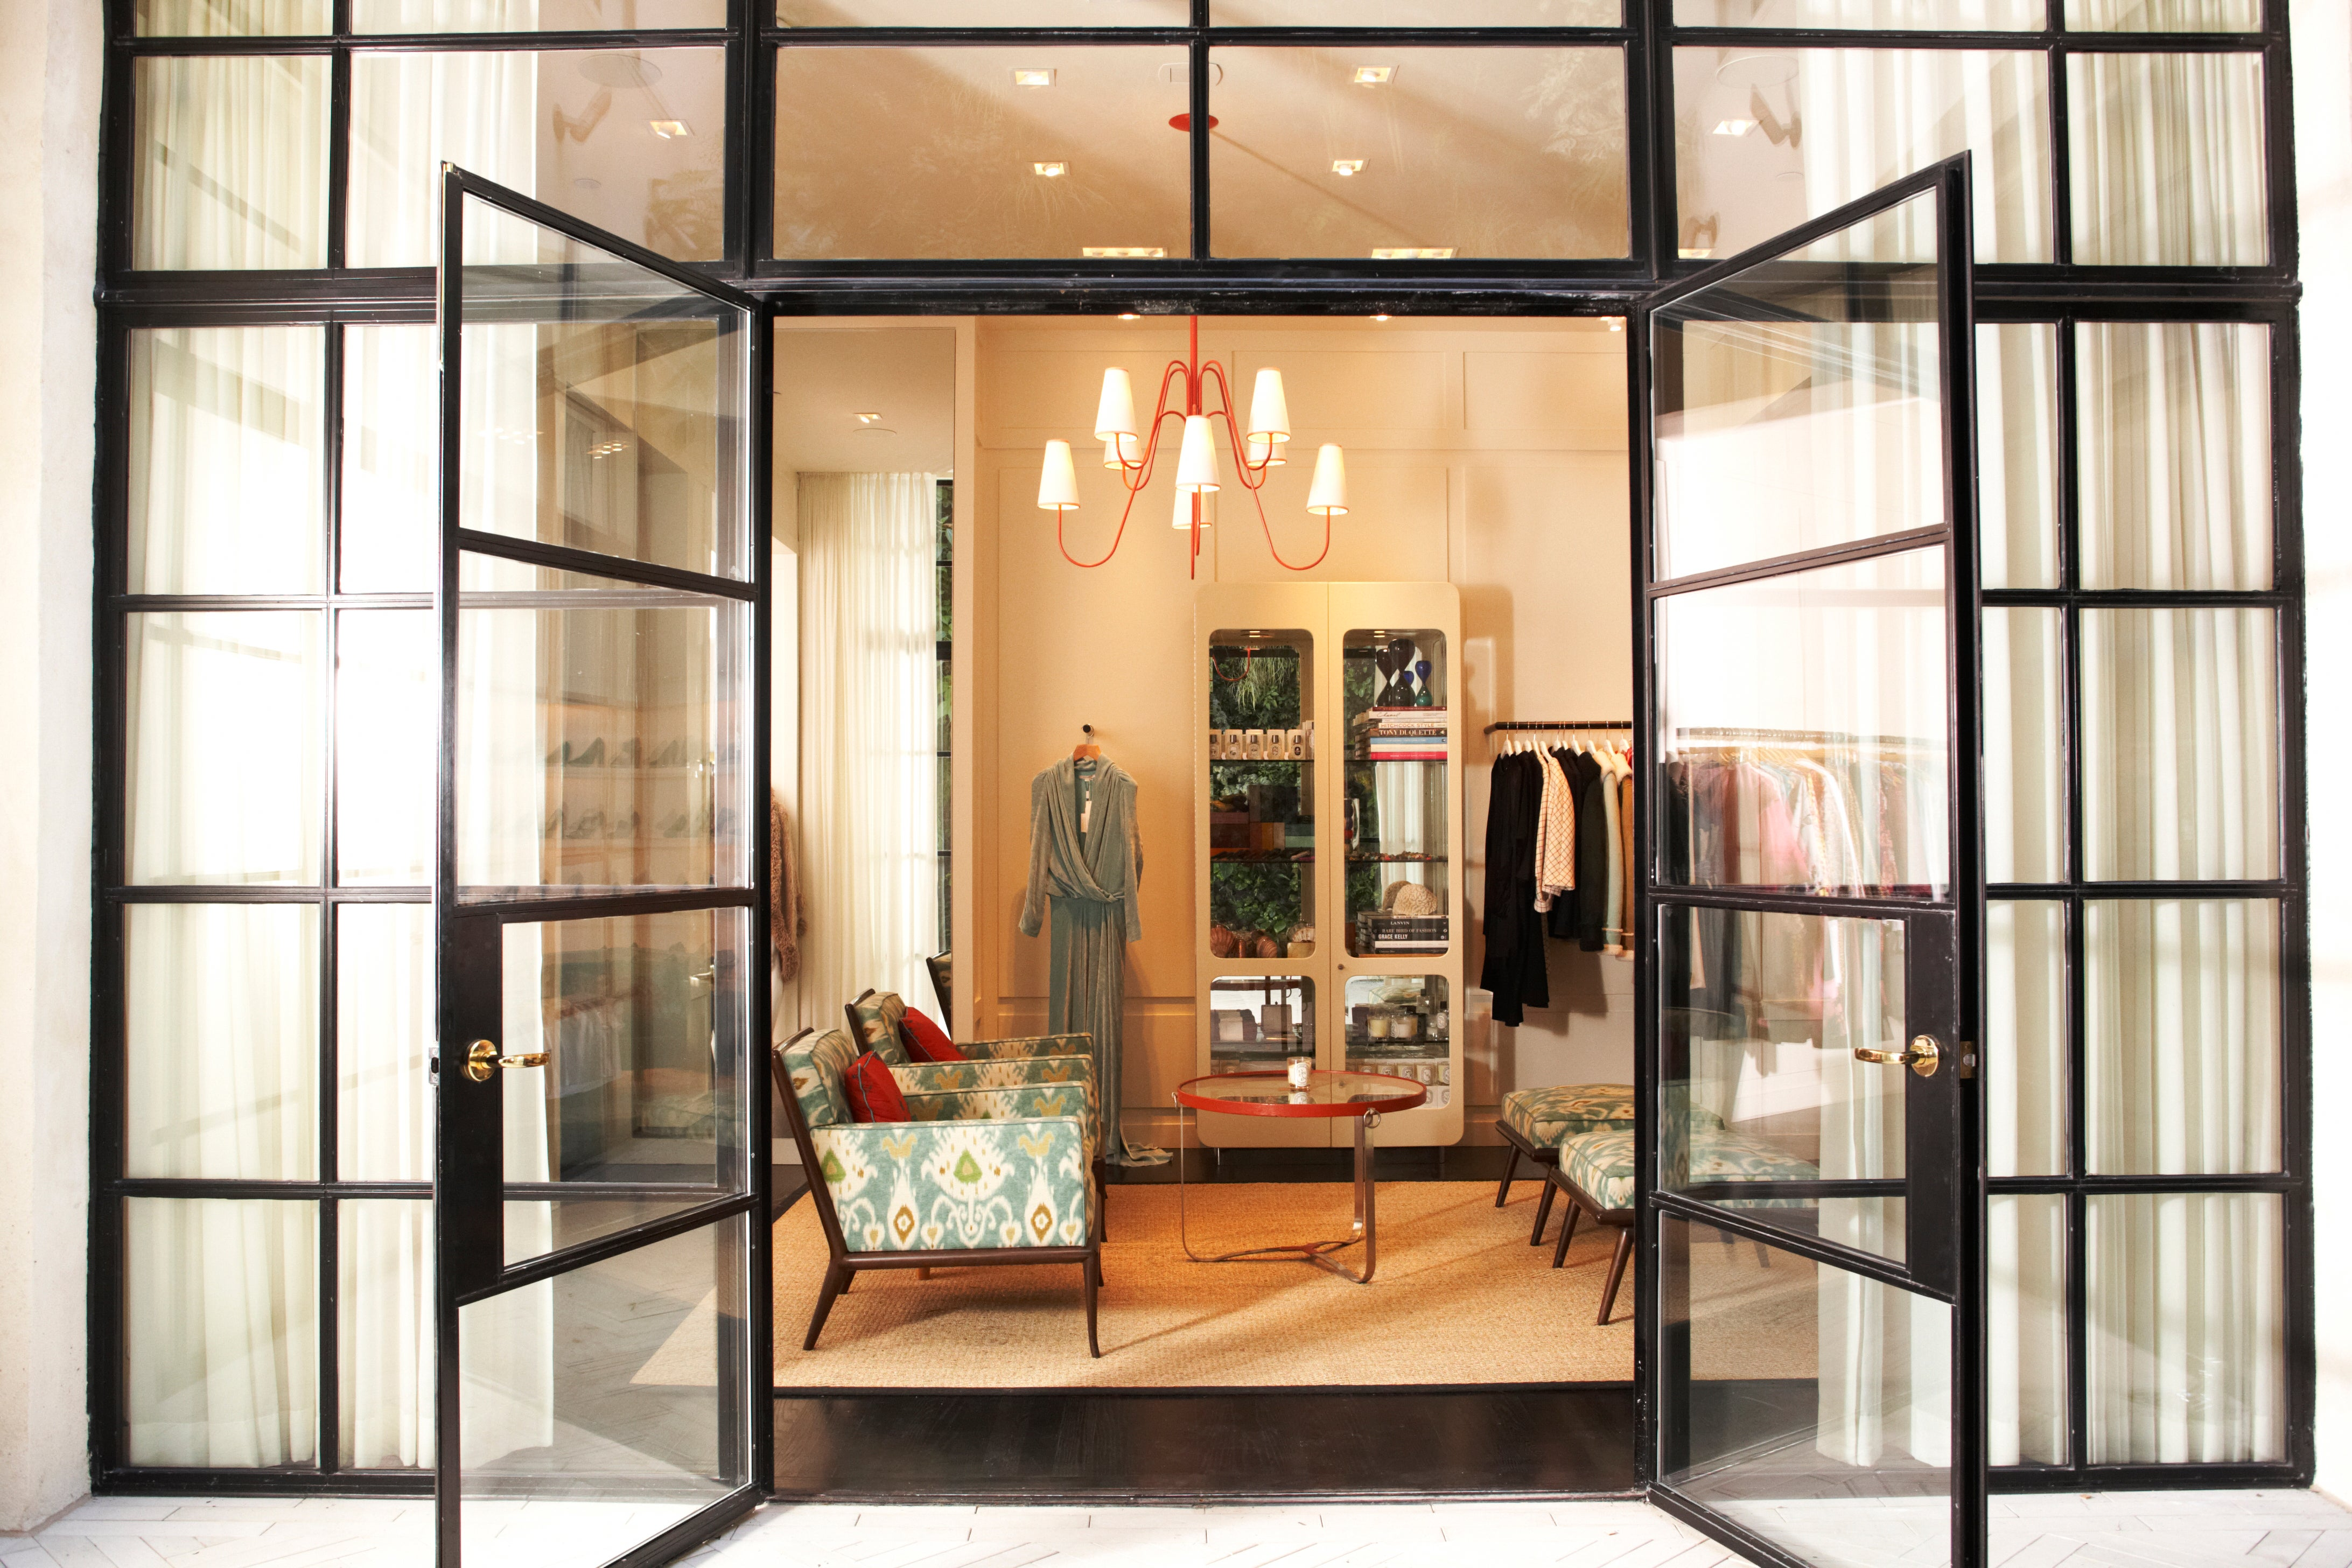 Capitol and poole shop by barrie benson interior design Interior design firms in charlotte nc